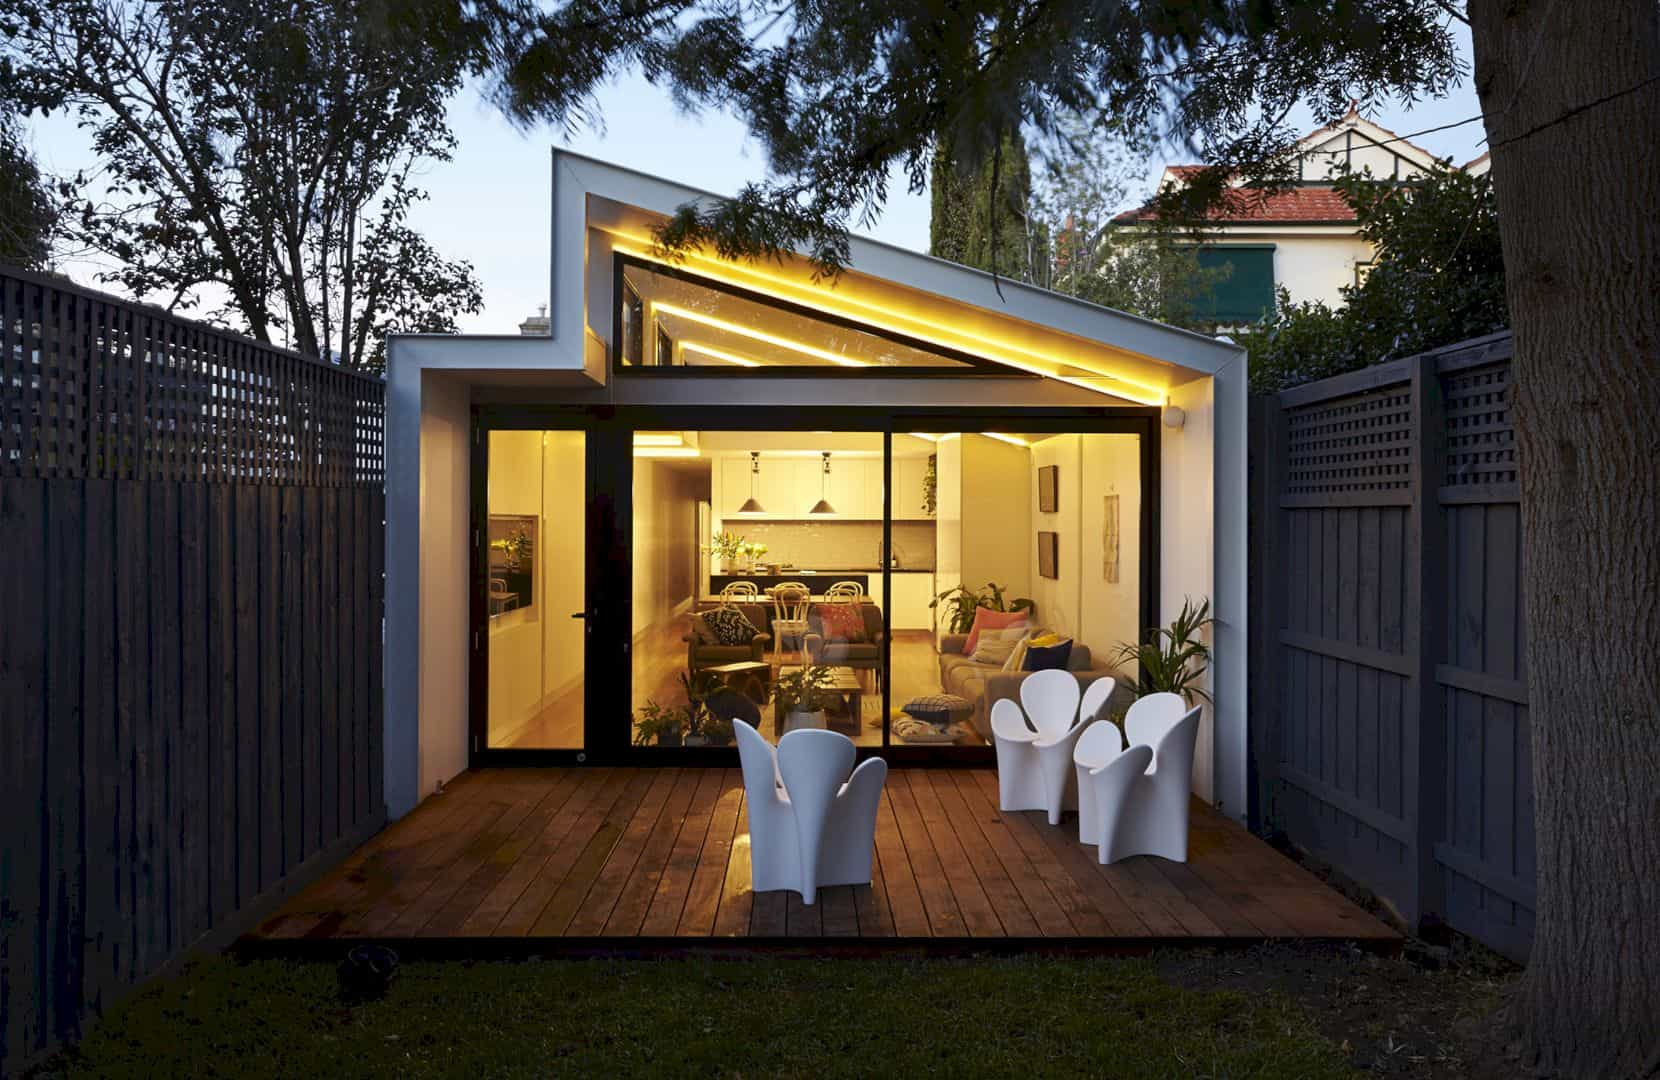 A Boundary to Boundary Row House in Elsternwick